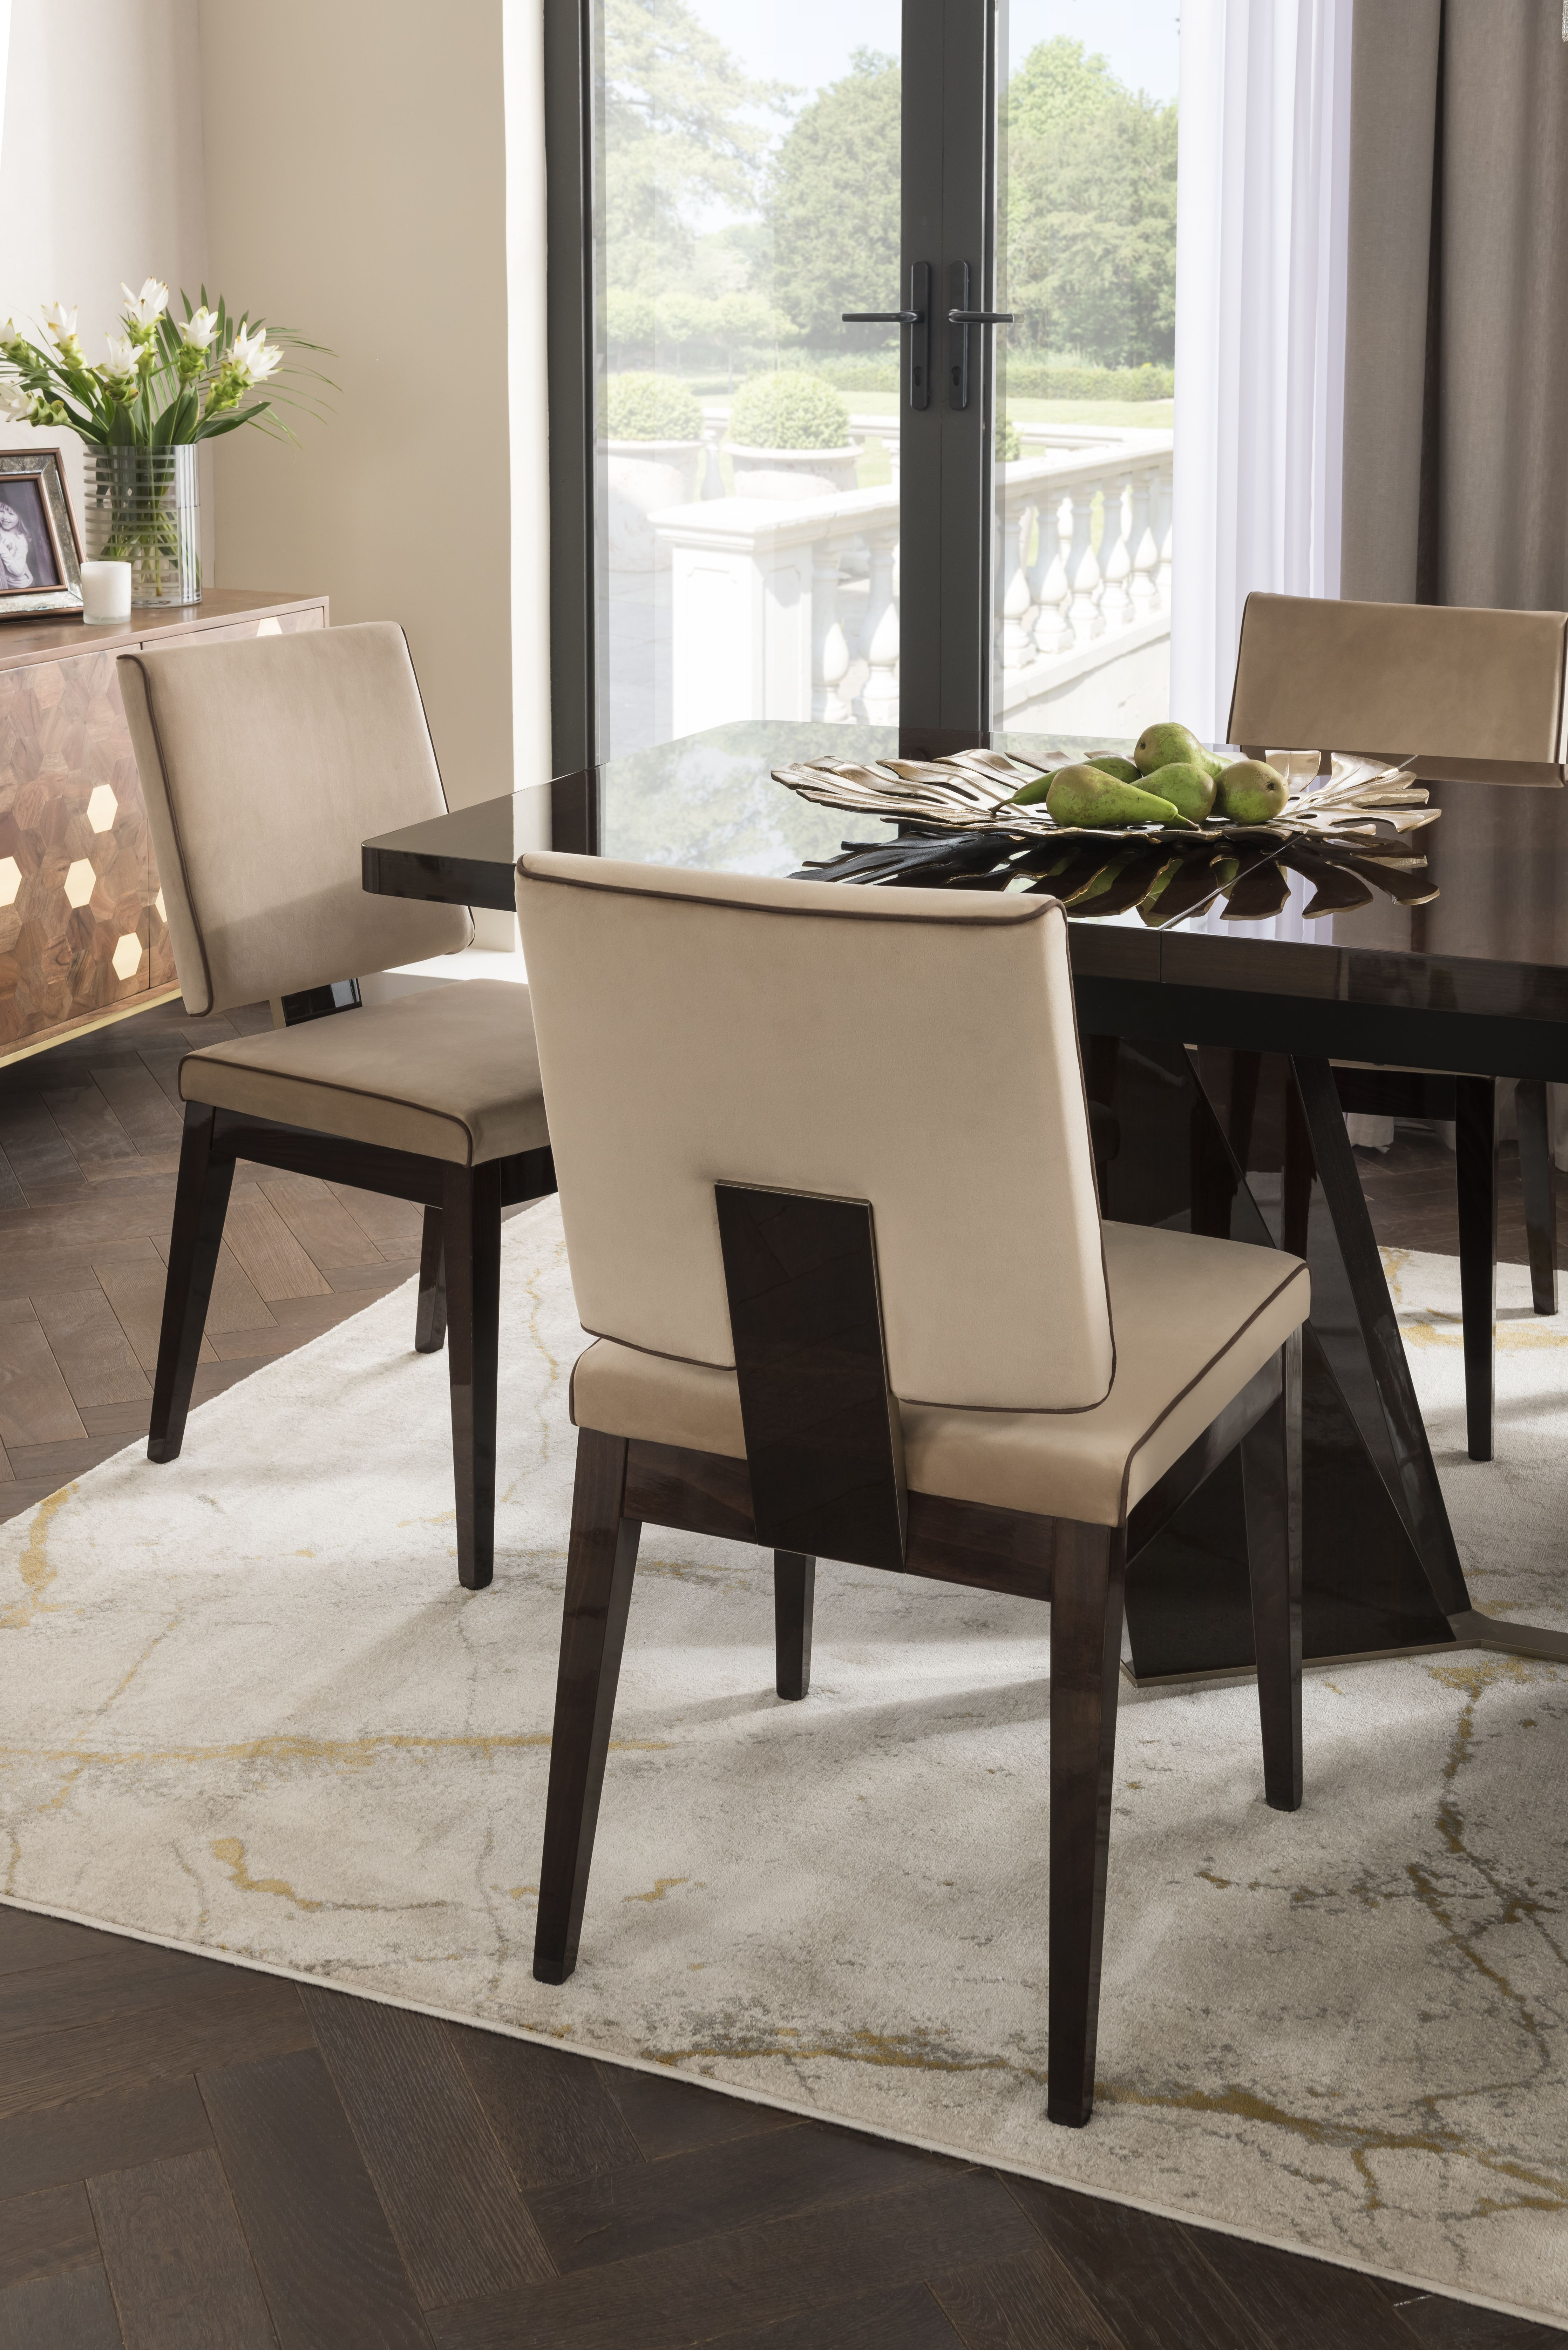 Contemporary Dining Chairs Luxury Dining Chair At Home